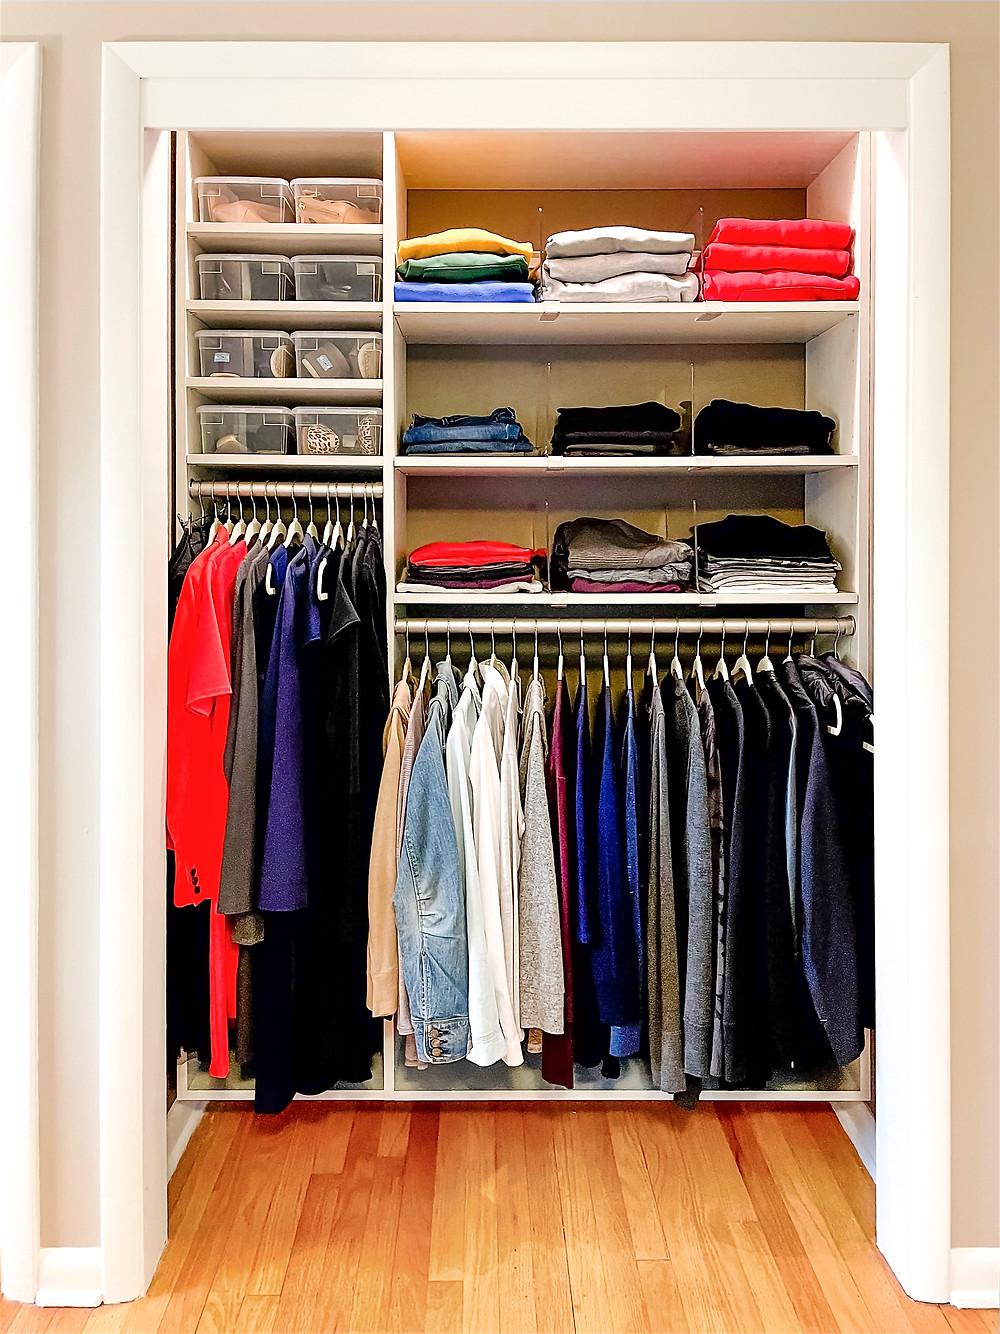 Similar types and colors of clothing stored neatly together.